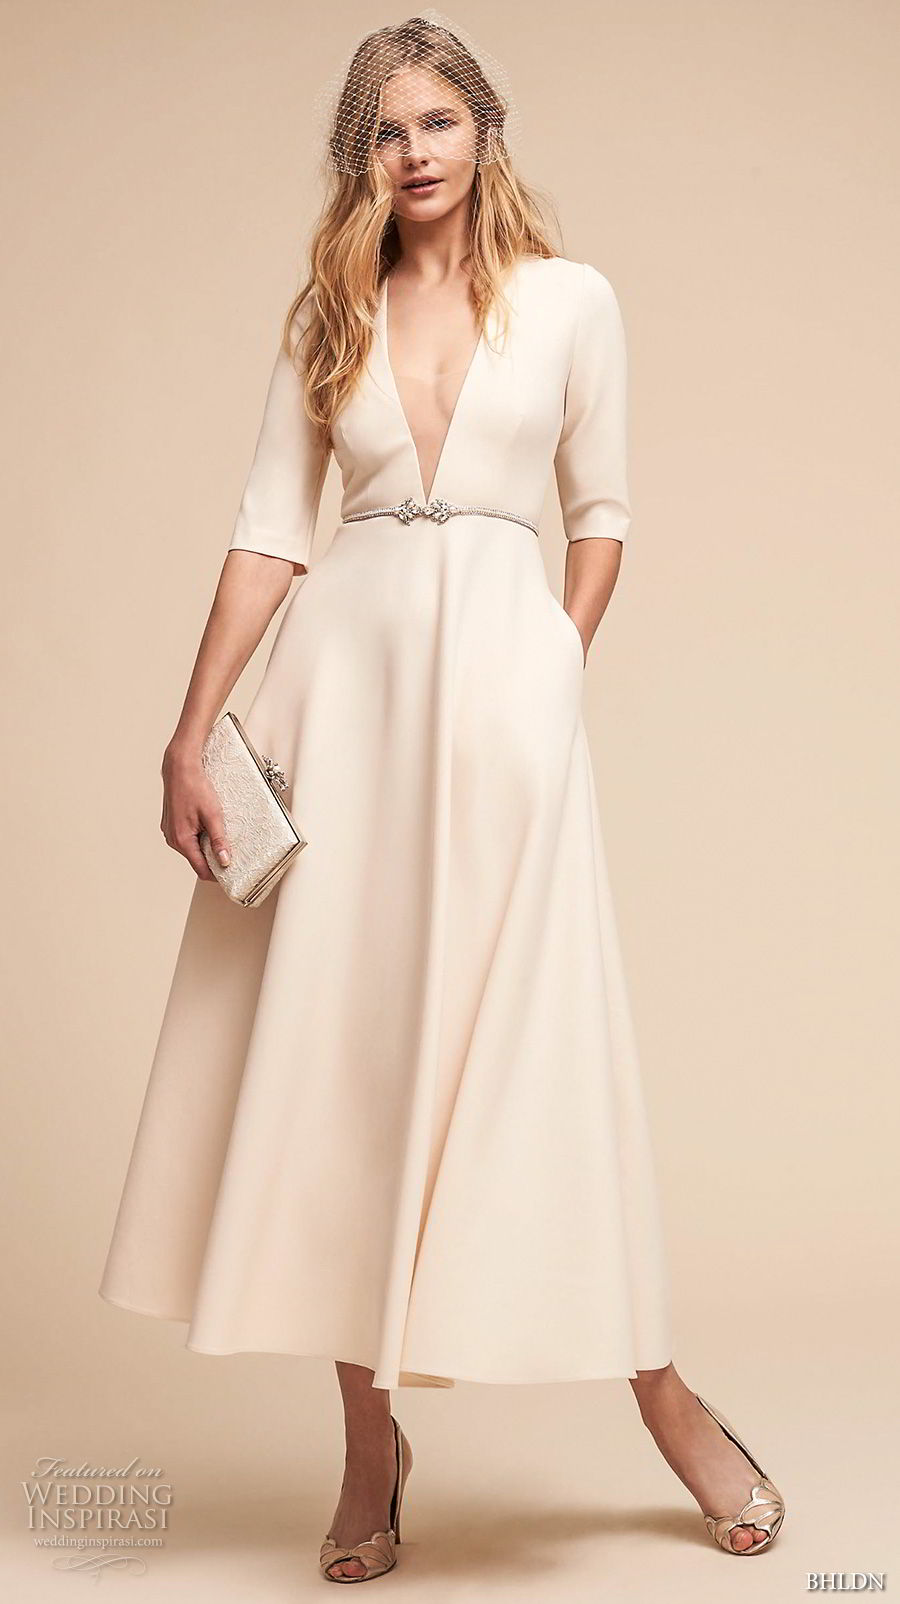 bhldn spring 2018 bridal half sleeves deep v neck simple clean elegant classy ankle length short wedding dress with pockets (14) mv